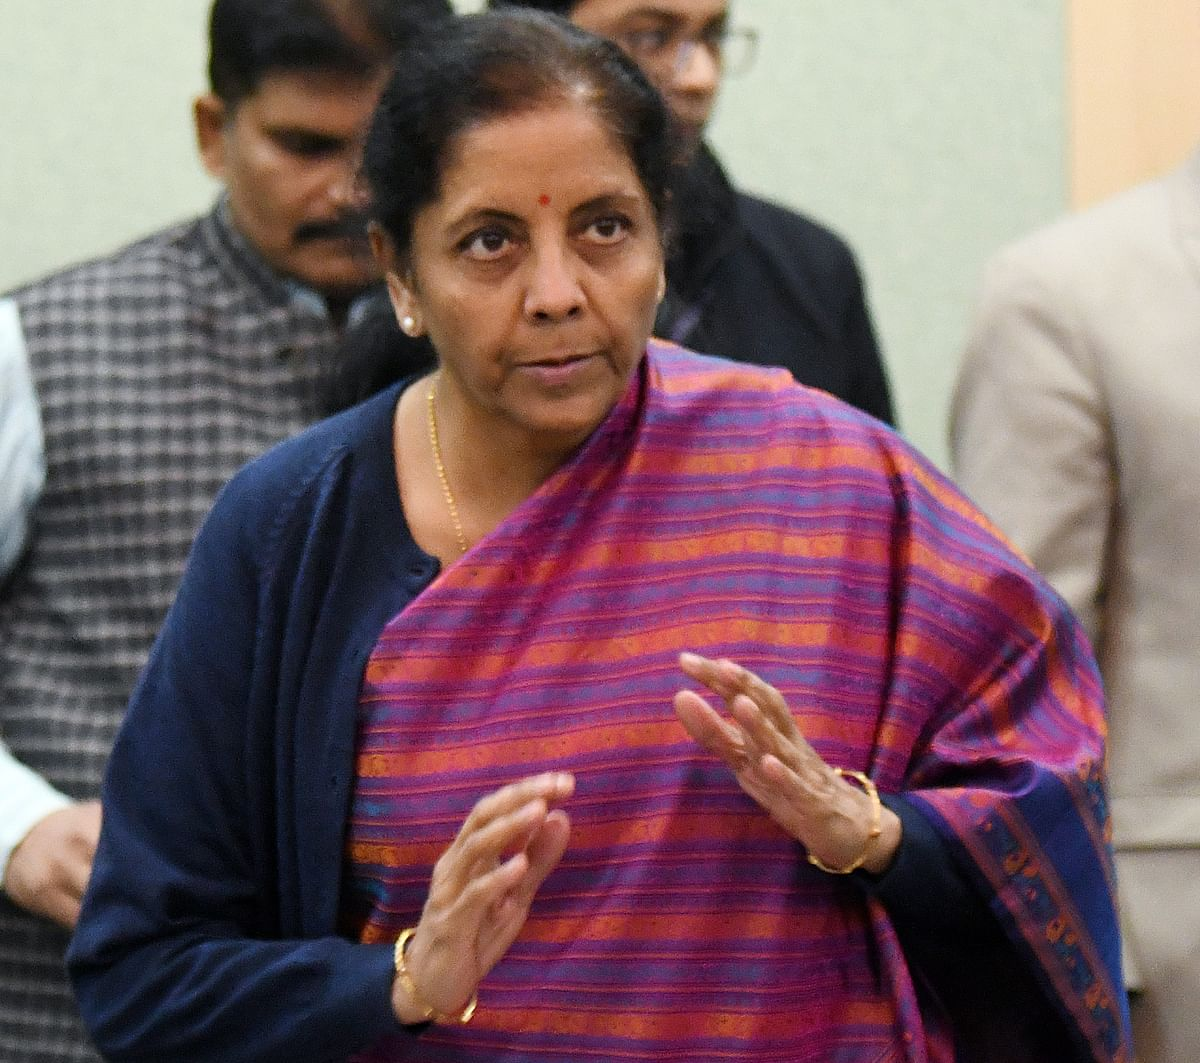 Finance Minister Nirmala Sitharaman after a meeting with stakeholders' groups from New Economy, start-ups Fintech and Digital ahead of her 2020-2021 annual budget announcement. The pandemic has fast-tracked the evolution of sectors such as e-commerce, edtech, healthtech and fintech.